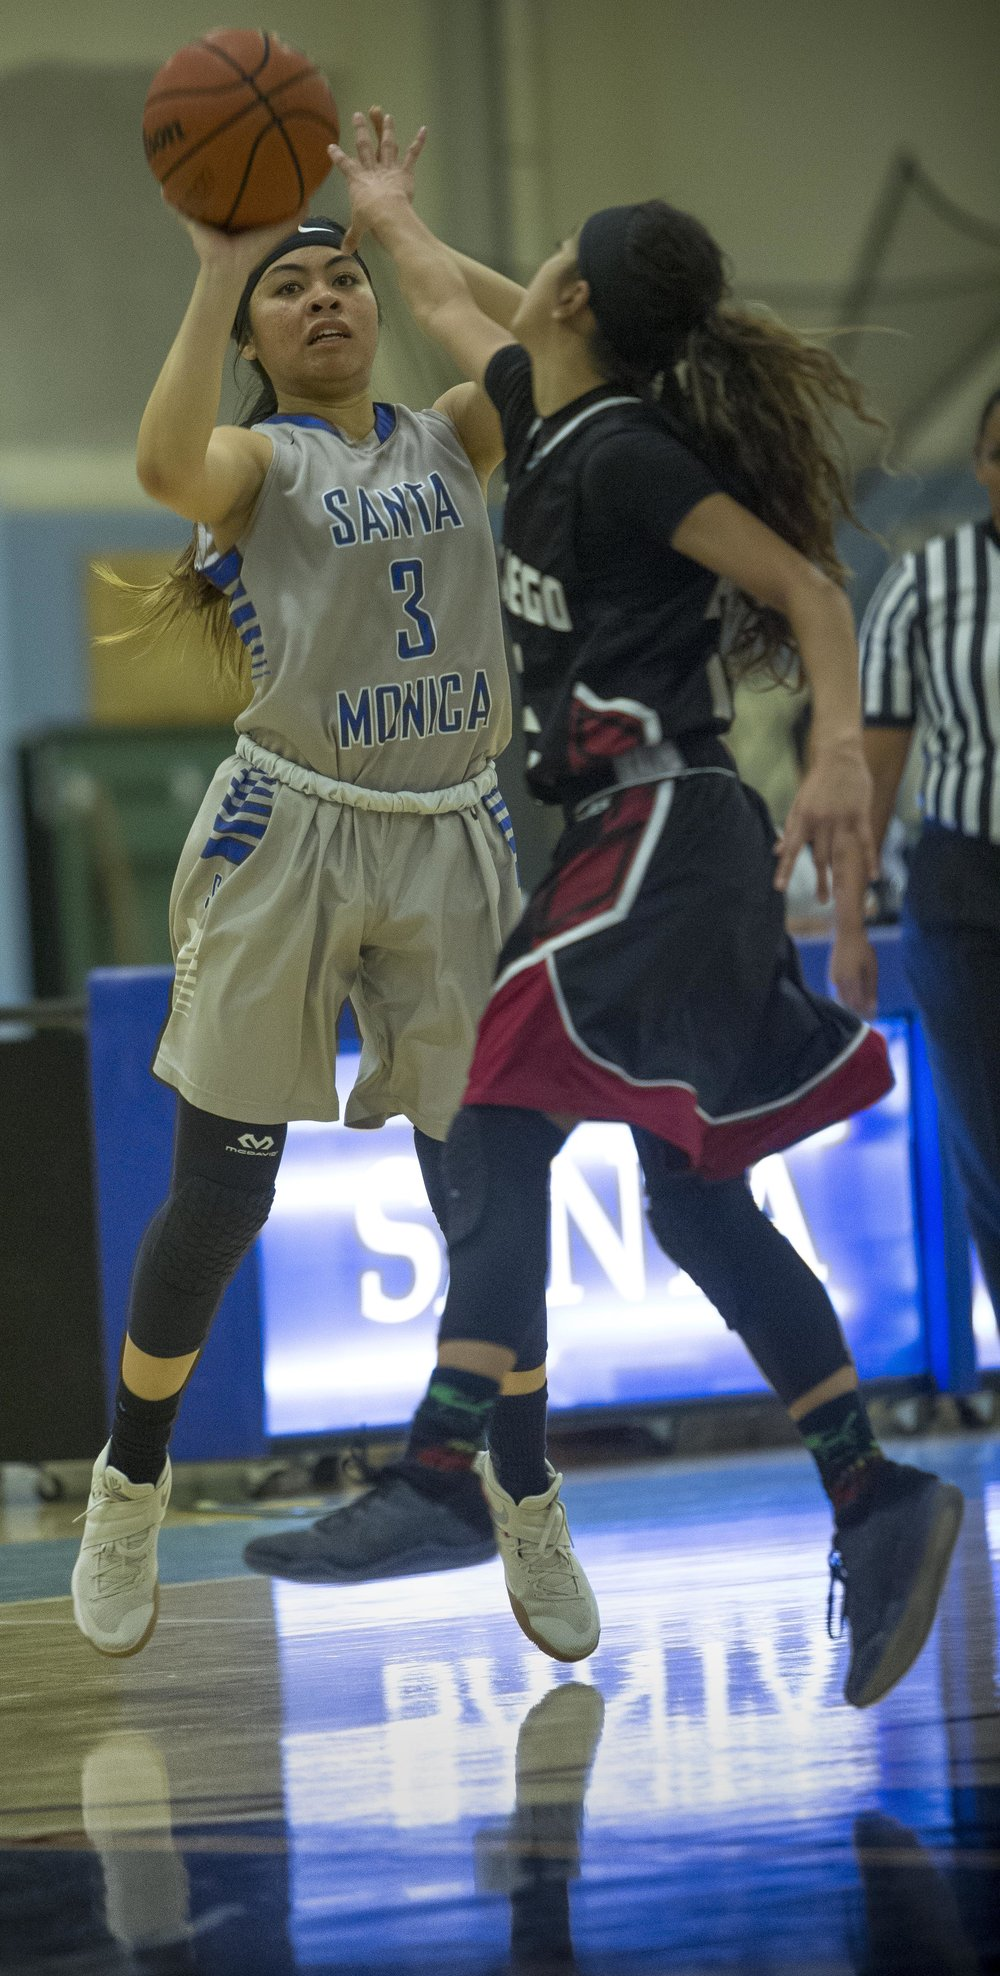 Feburary 22nd 2017 . The Santa Monica College Corsair Womens Basketball teams sophomore forward #3 Katya Echavez shots a three pointer to score against The San Diego City College Knight's sophomore guard #32 Evangeline Morga (black,right). The Corsairs would win at home in Santa Monica Calif. 89-78 earning them advancement into the second round of the SoCal Regional finals . Photo By: Daniel Bowyer/Corsair Staff